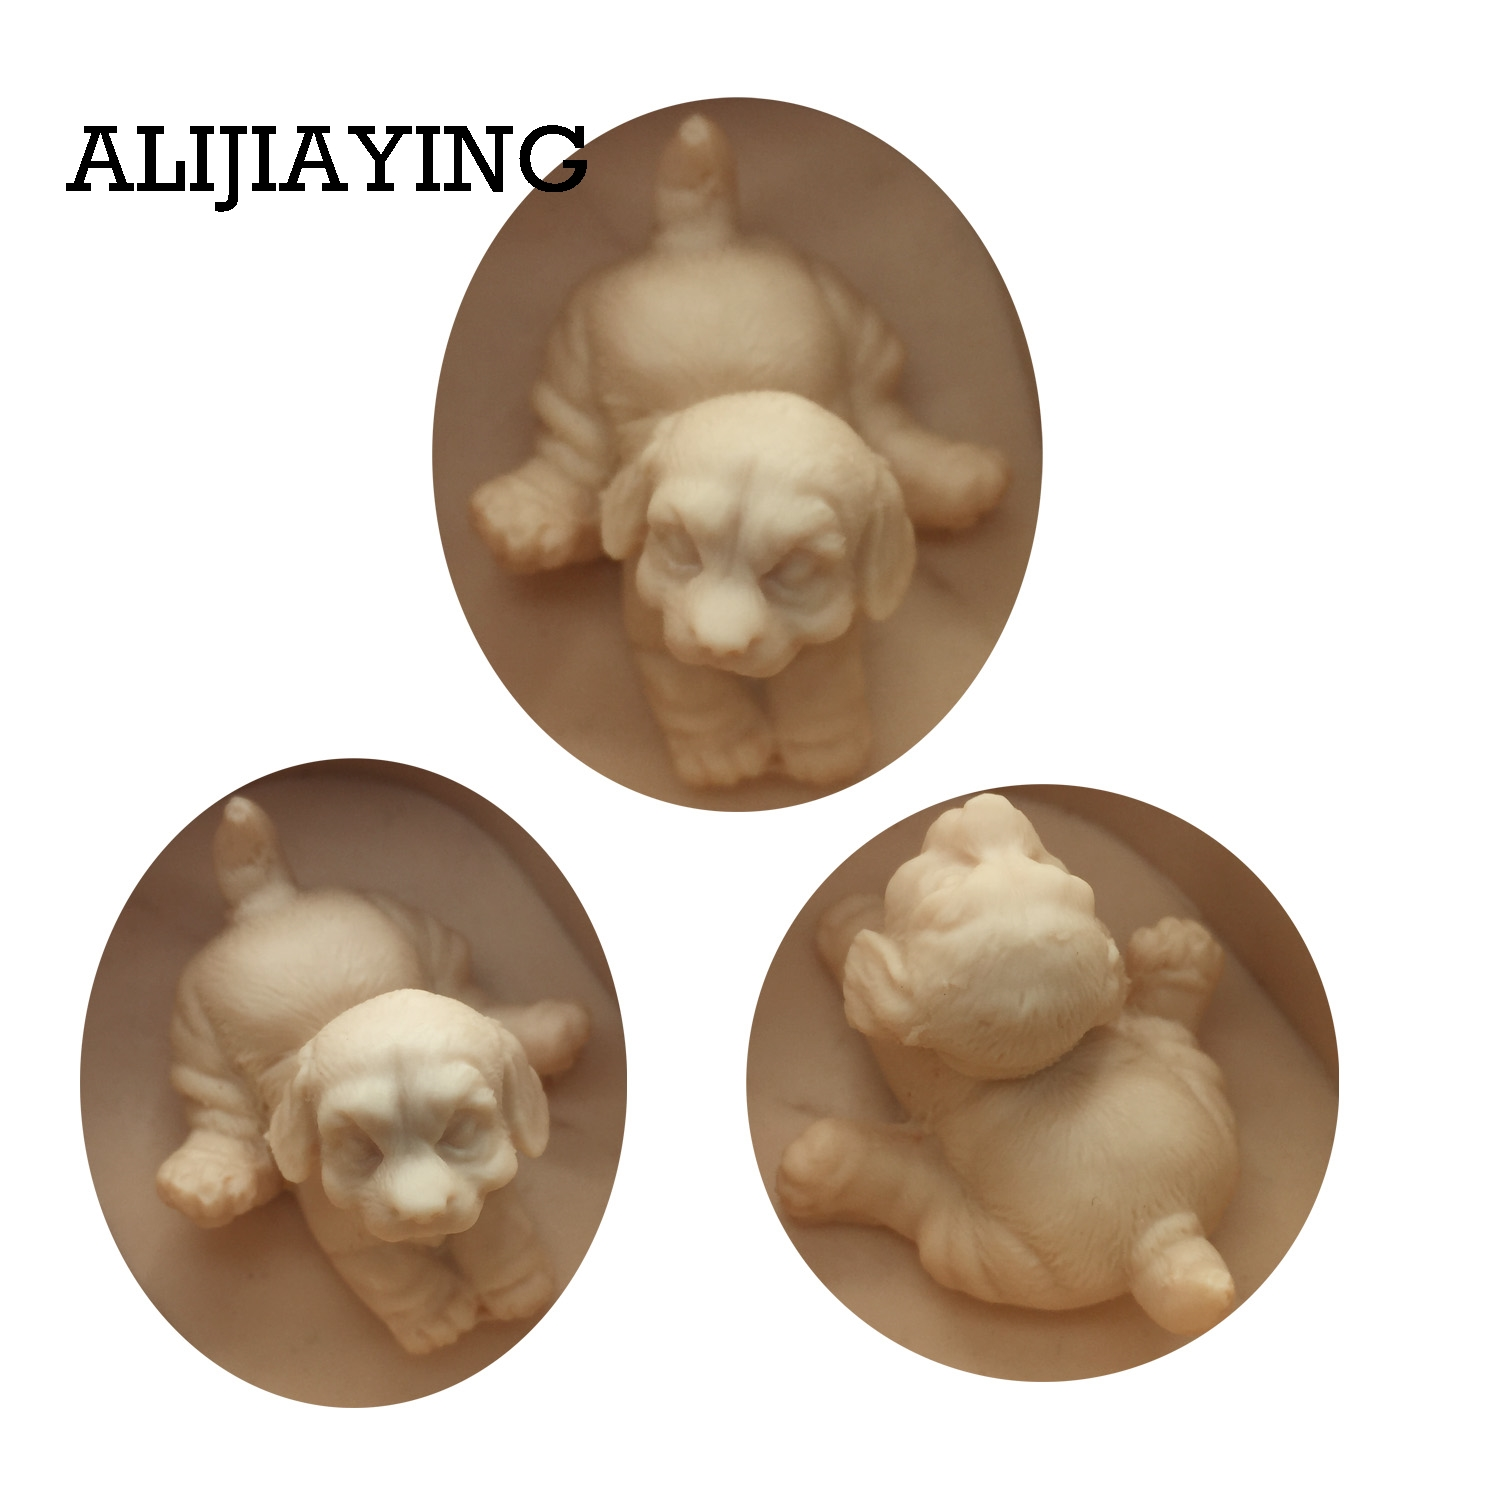 DY0018 3D dog Mold Handmade Craft Mould Plaster silicone molds Fondant Chocolate Moulds Resin Clay Soap candle Mold